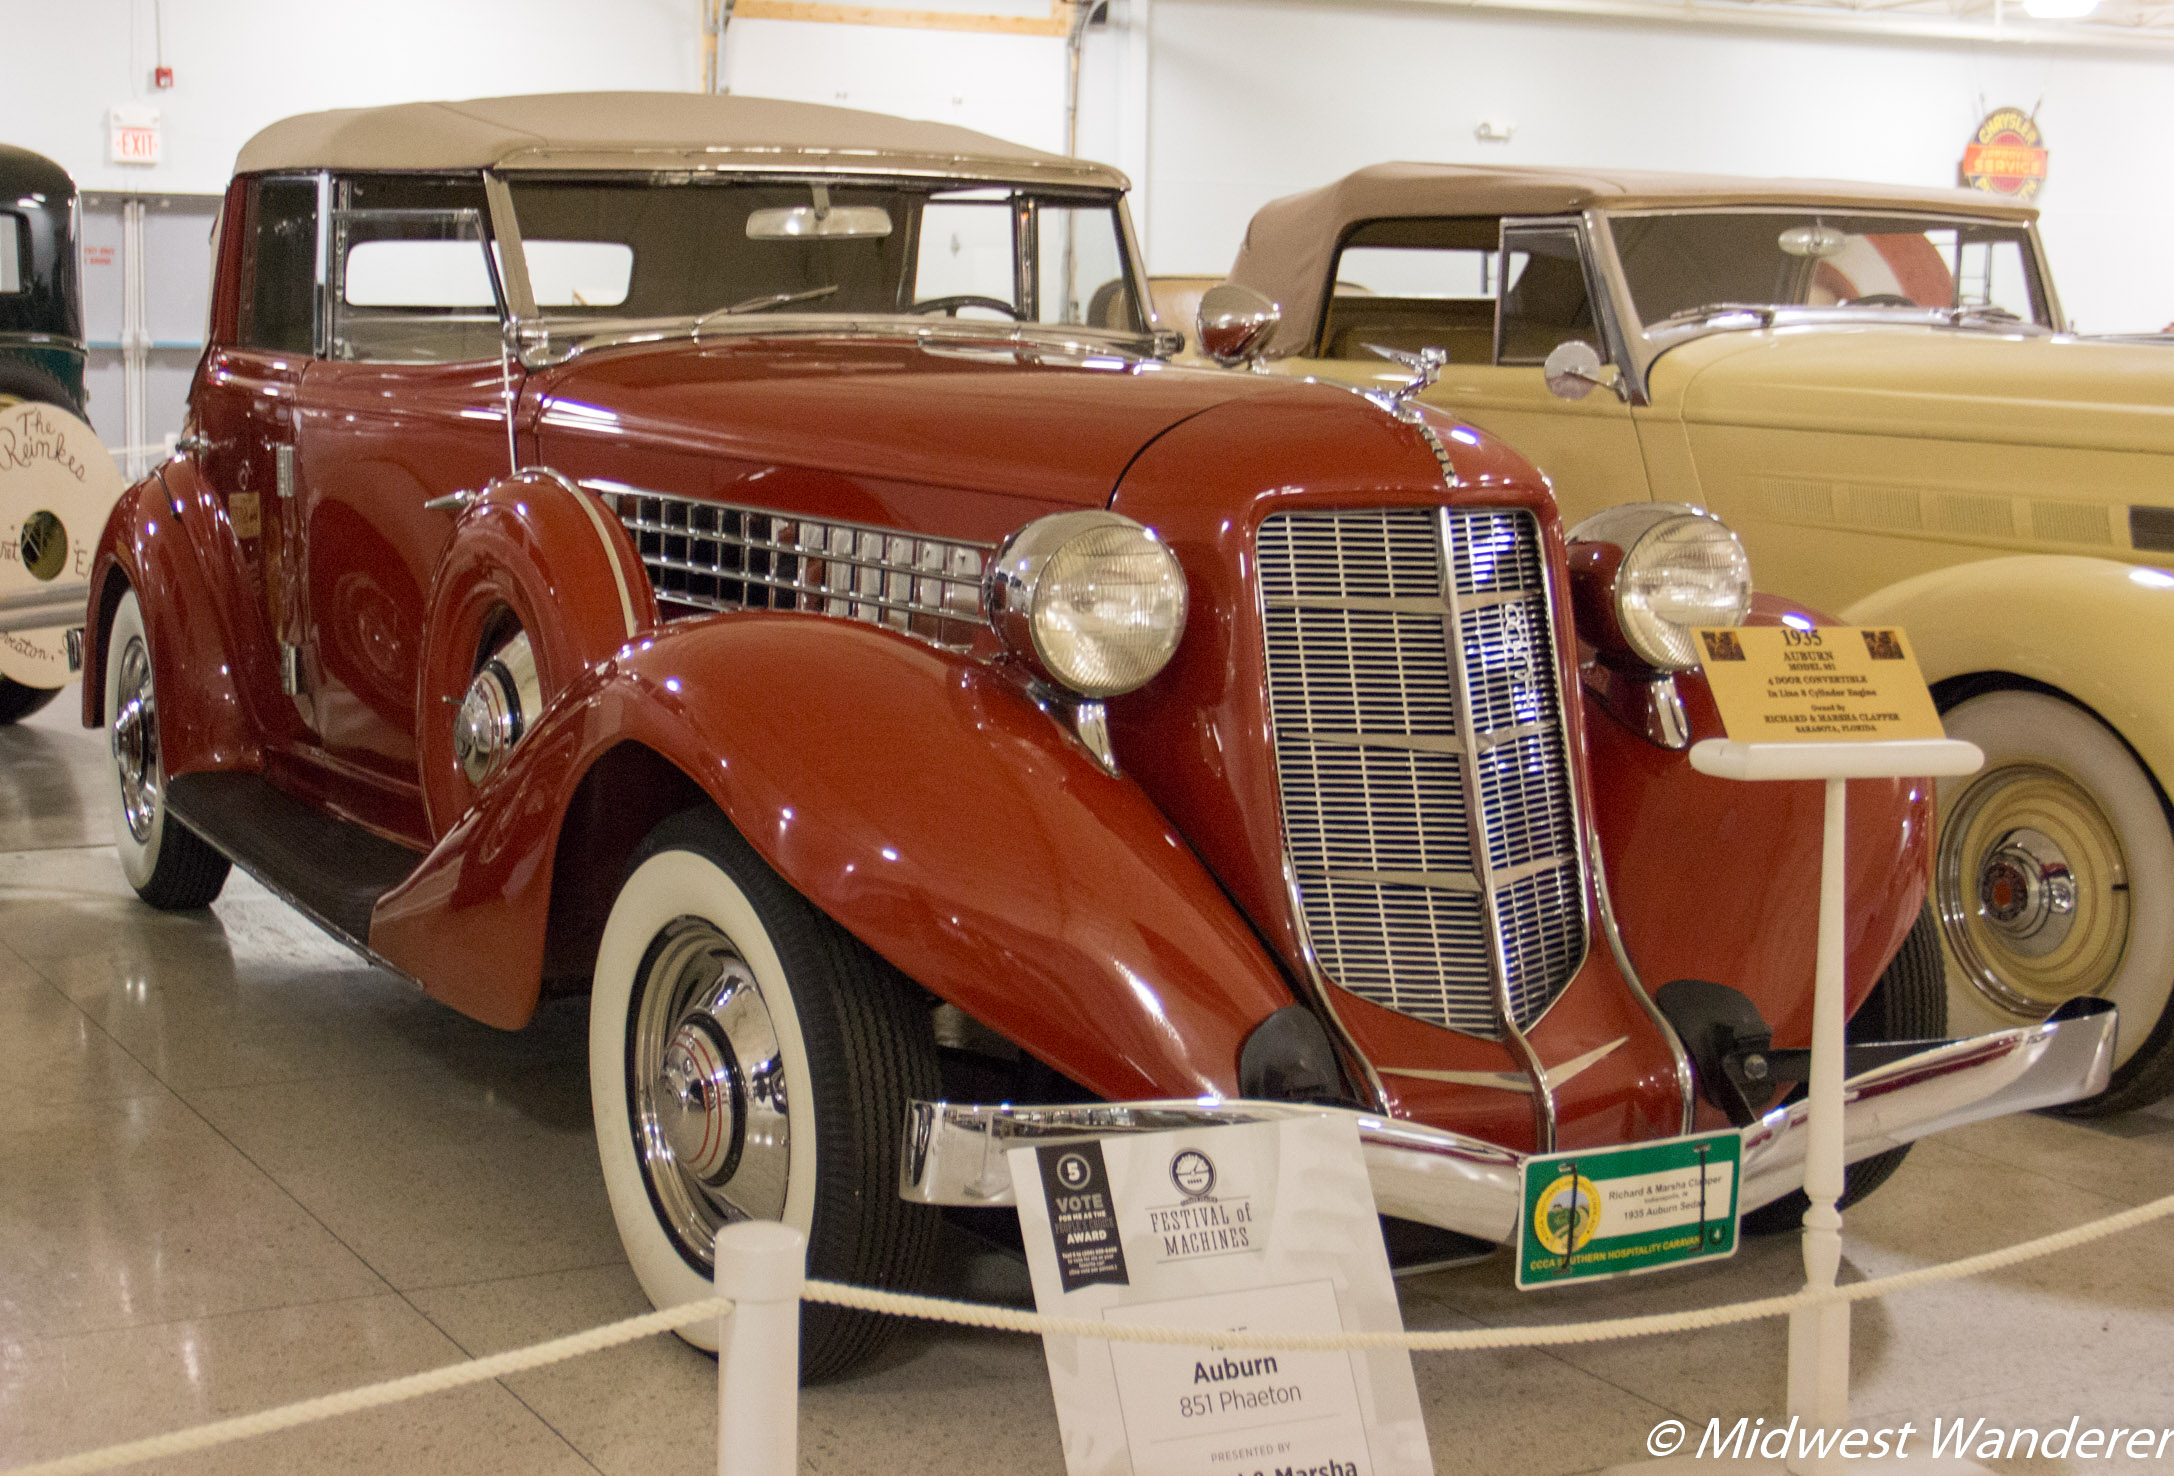 1935 Auburn model 851 Convertible, Kokomo Automotive Museum